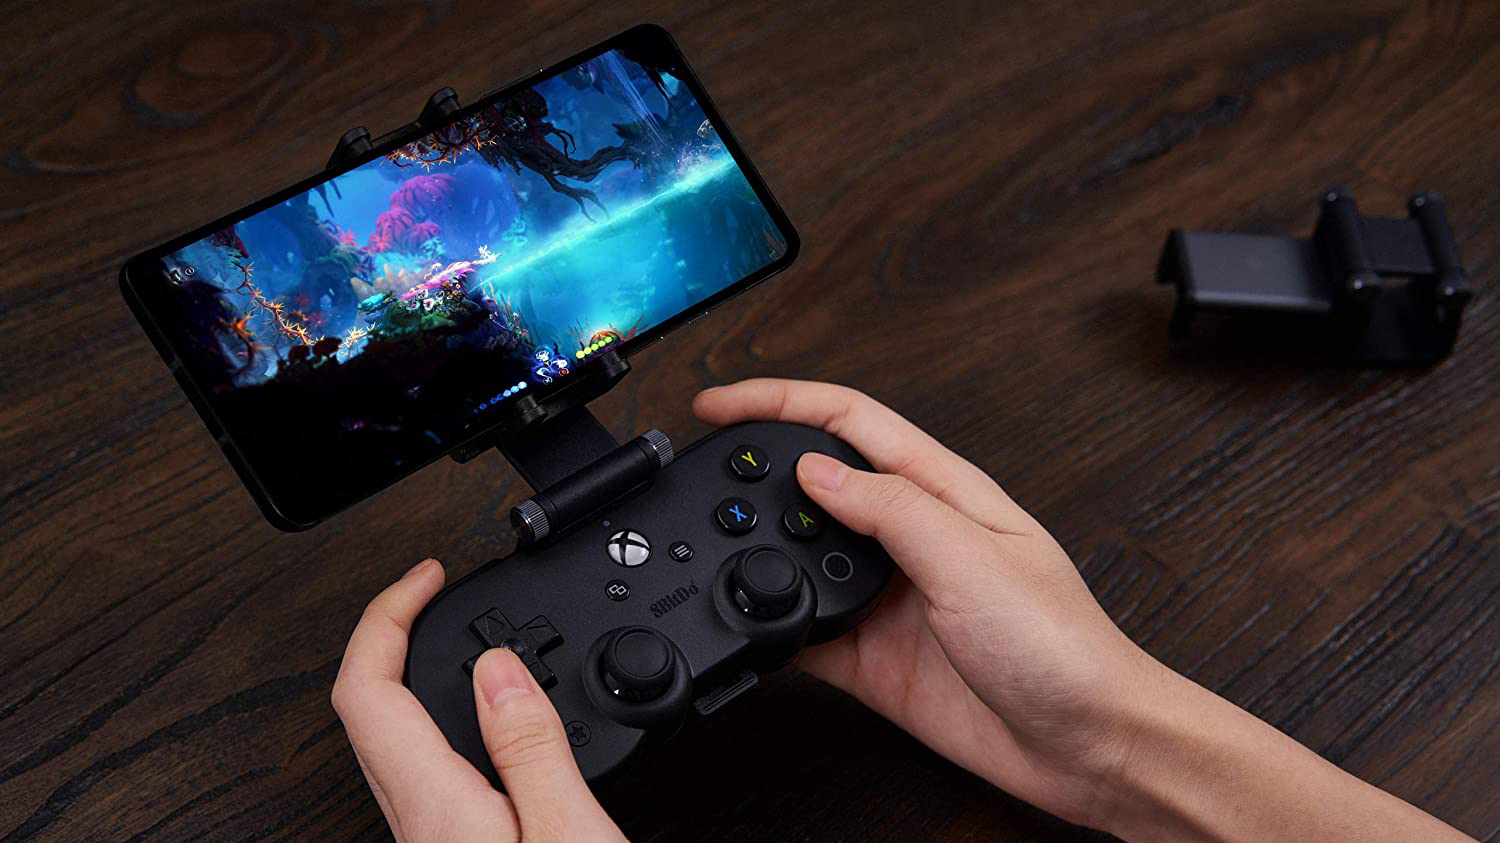 8BitDo reveals officially licensed xCloud Bluetooth gamepad xbox series x